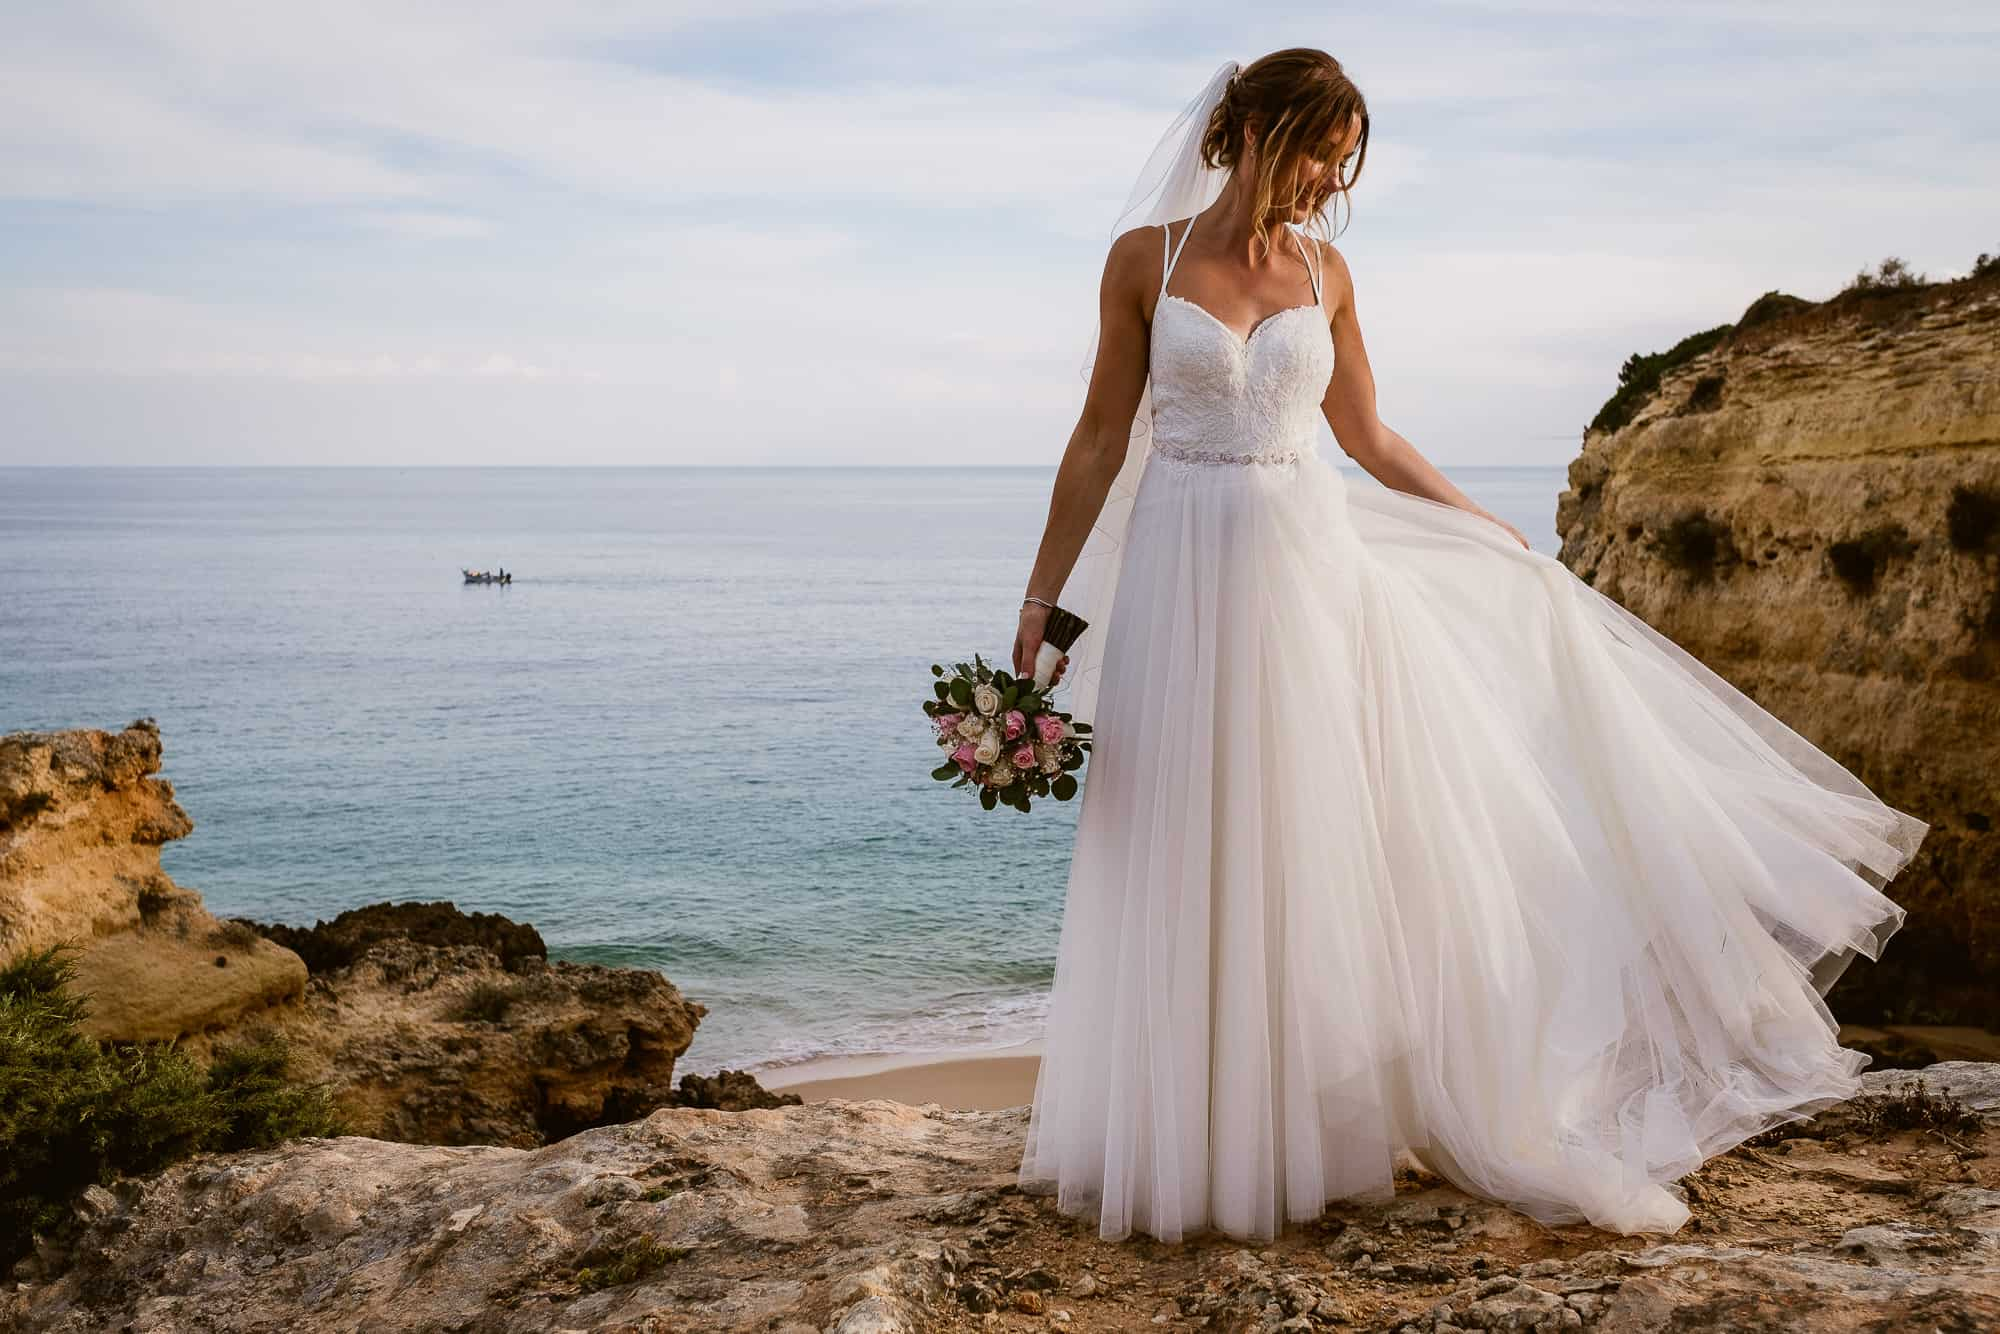 algarve-wedding-photographer-matt-tyler-0048